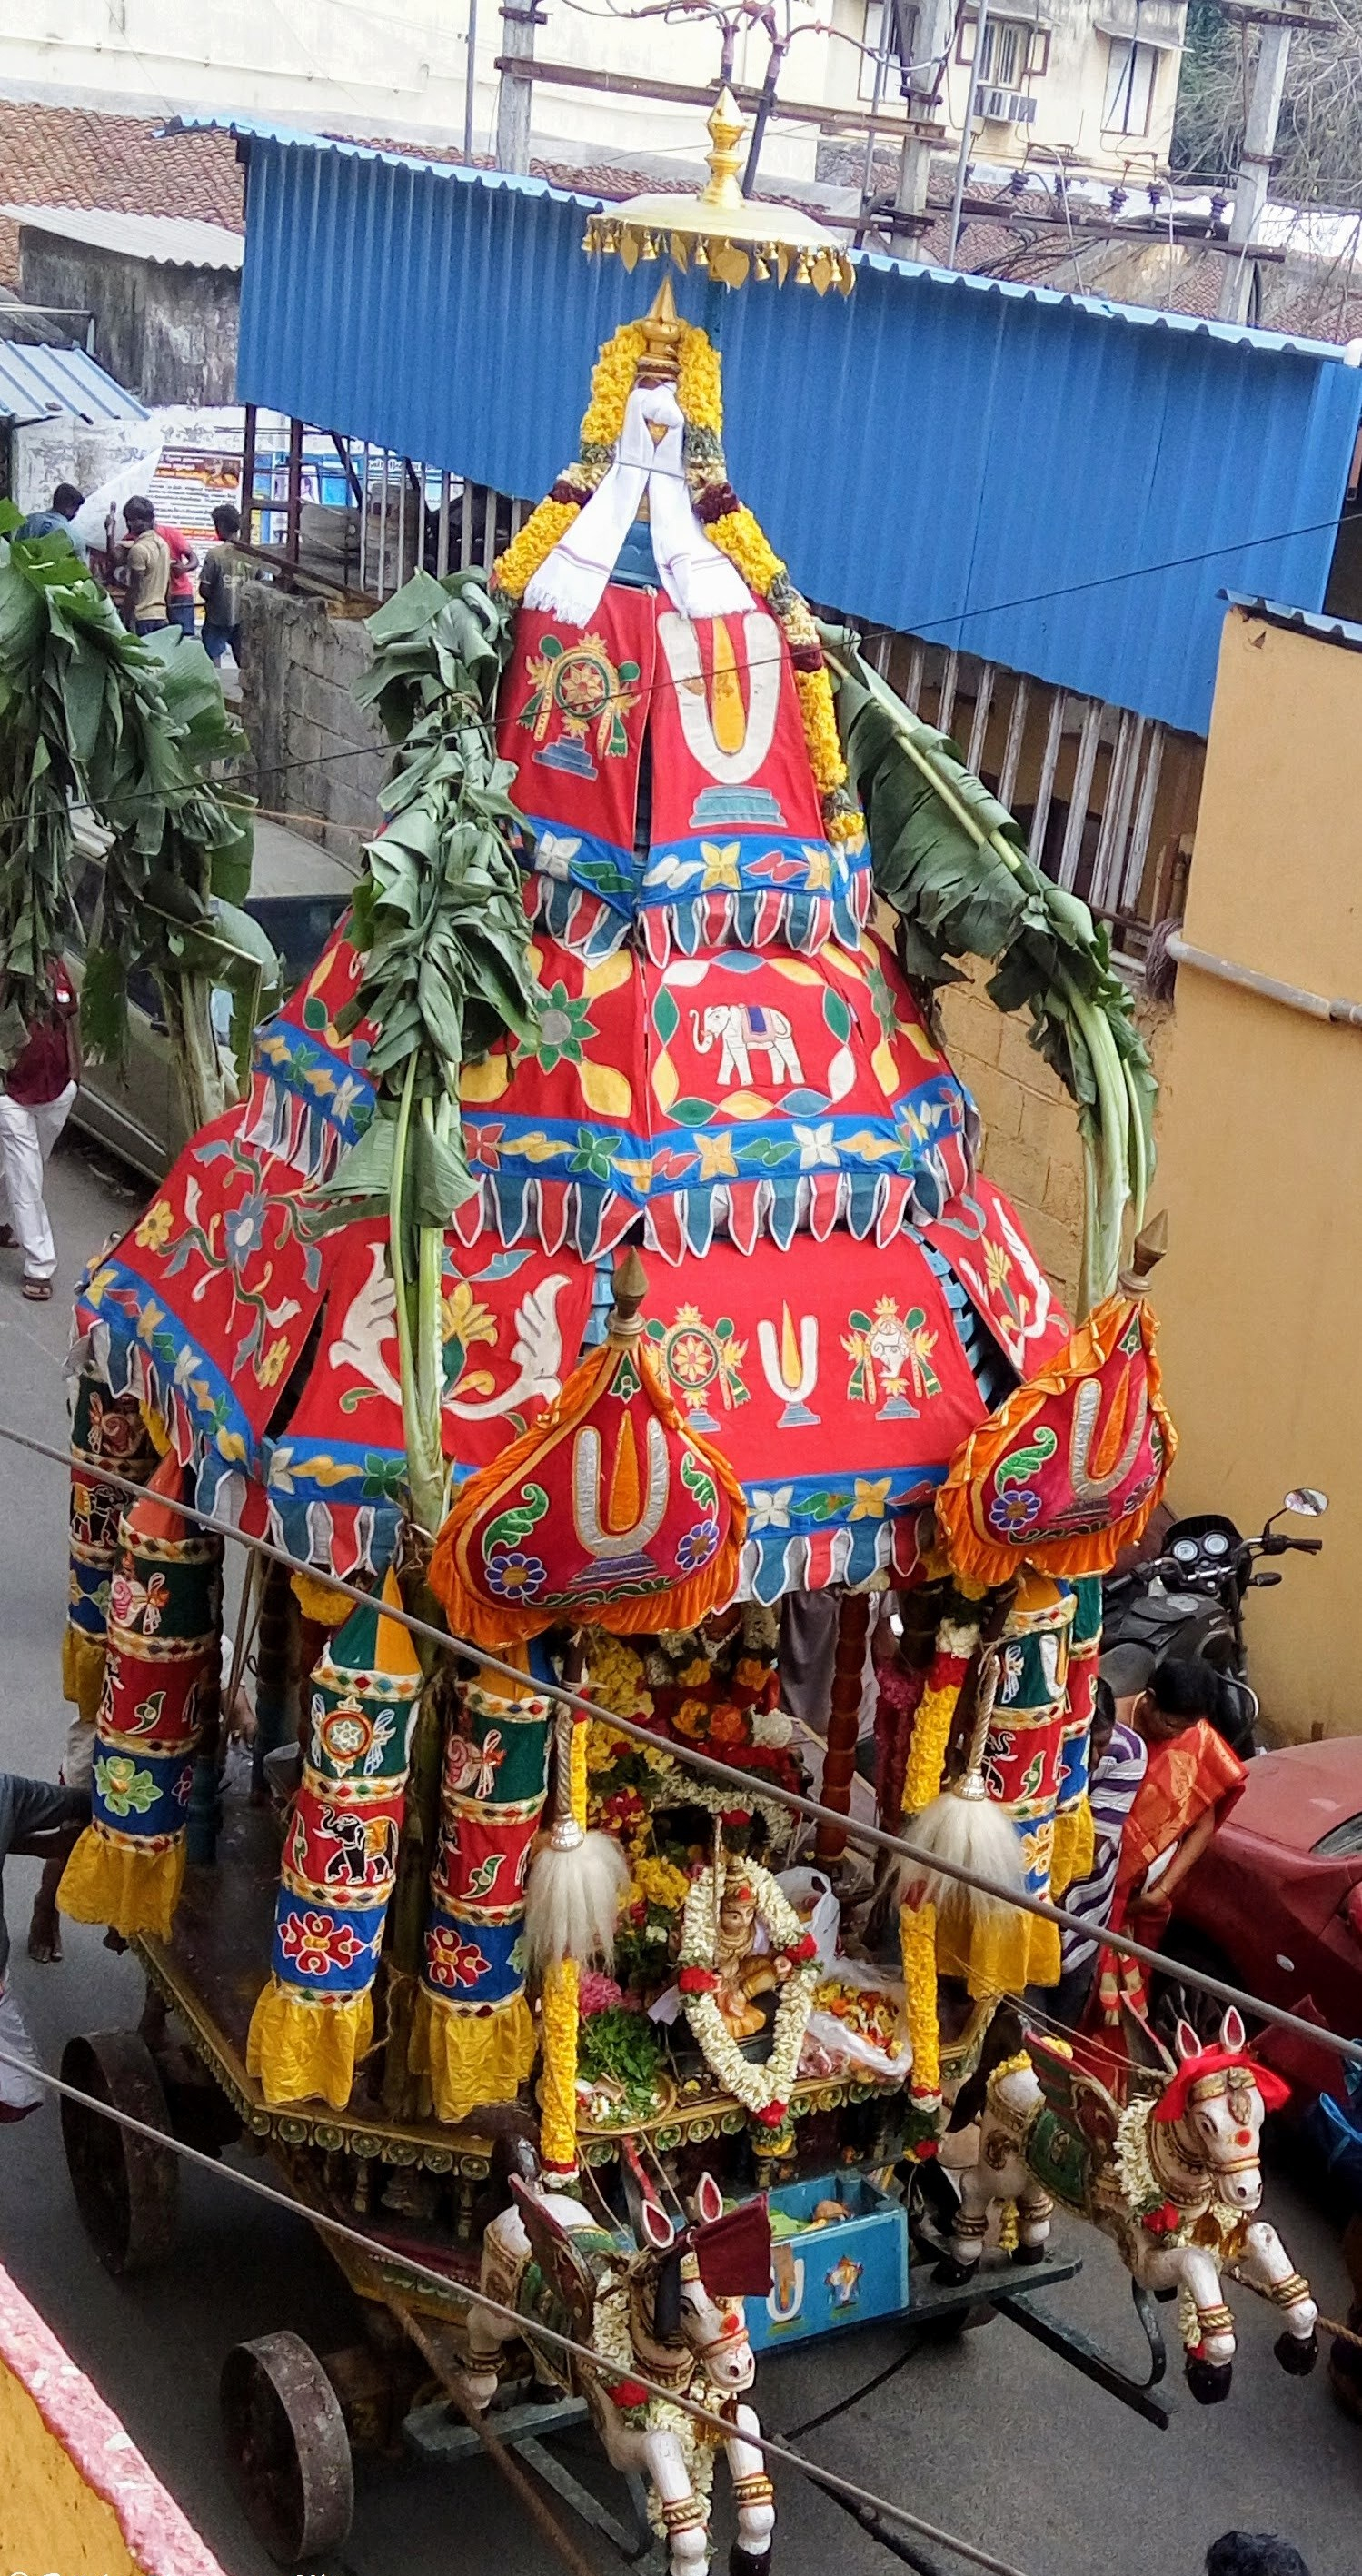 Every Tuesday - An Unusual Sight - A view of a temple car procession